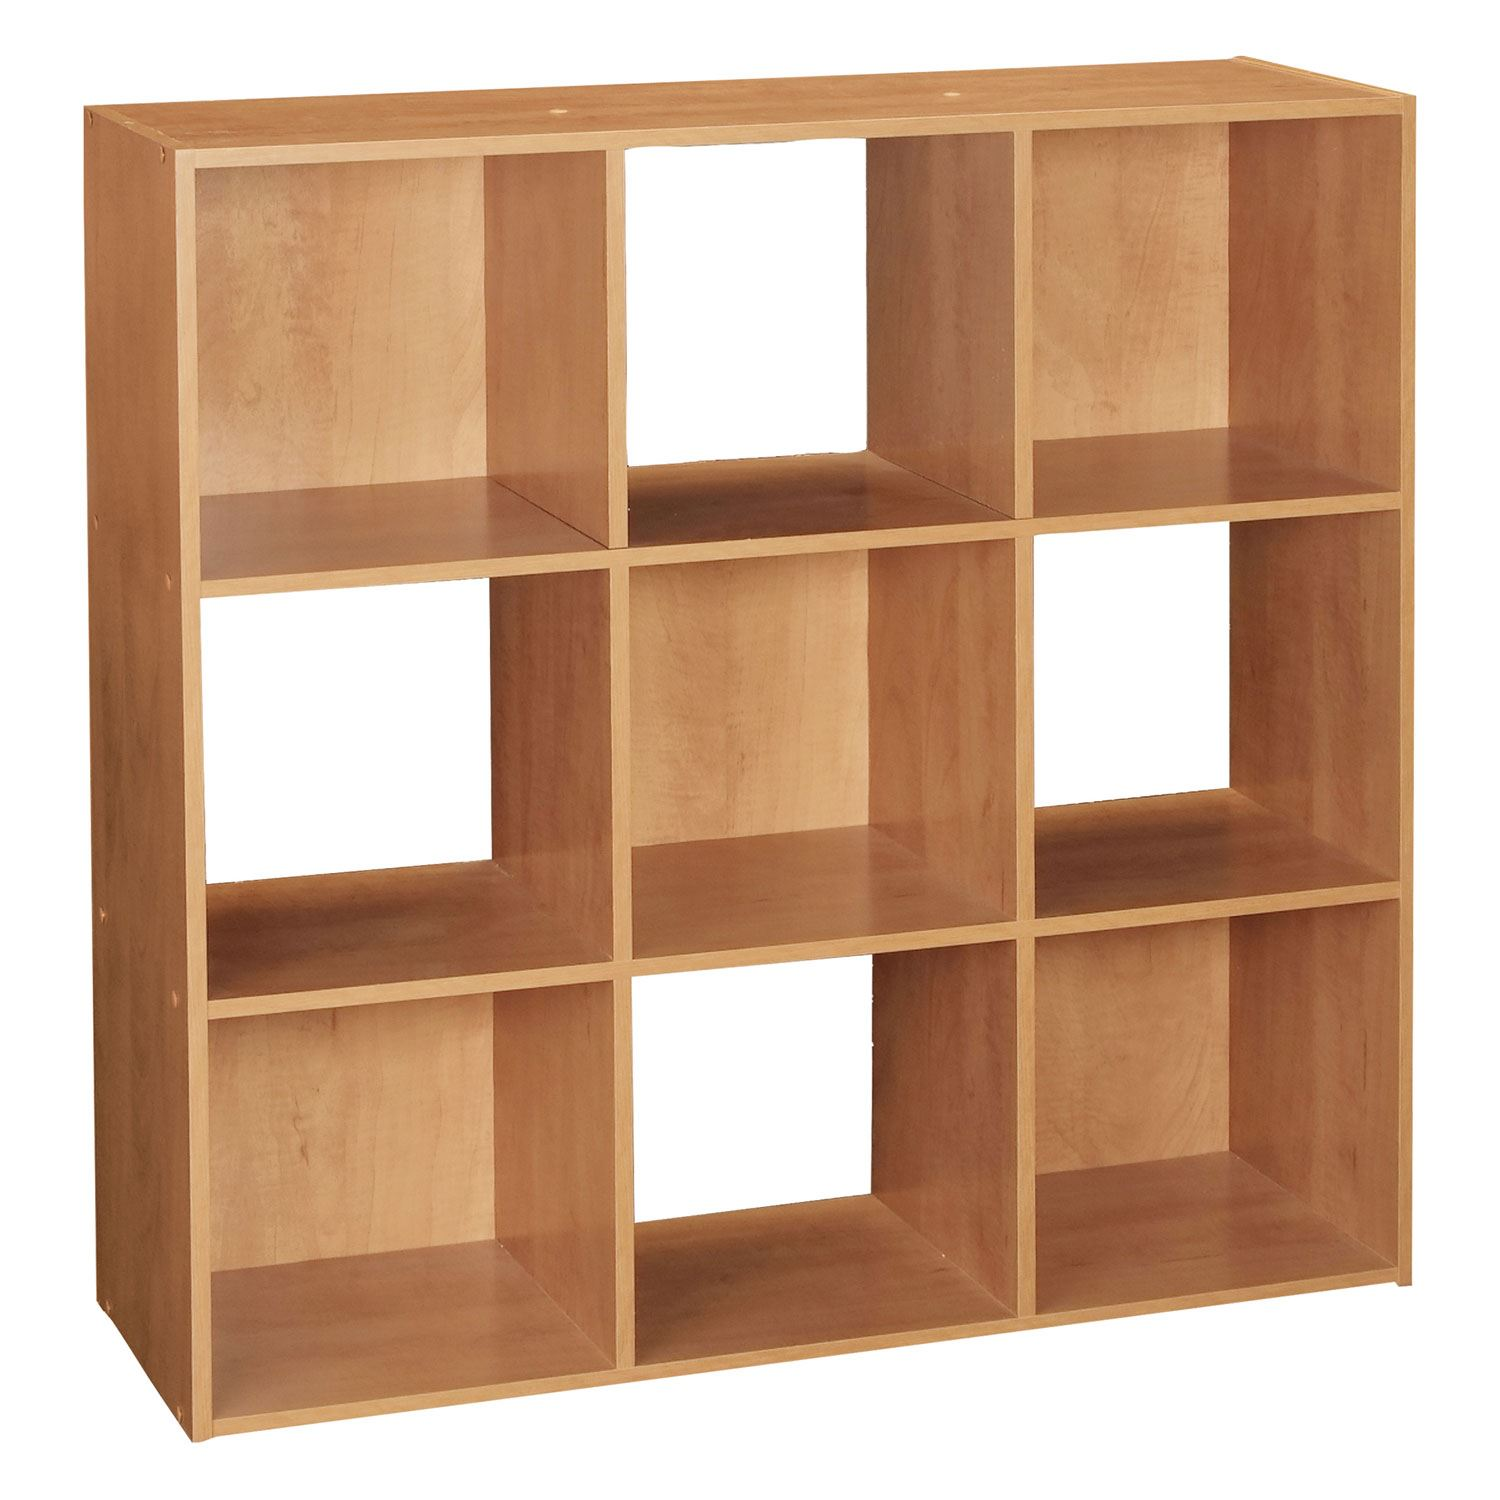 9 cube wooden display storage shelf bookcase shelves shelving